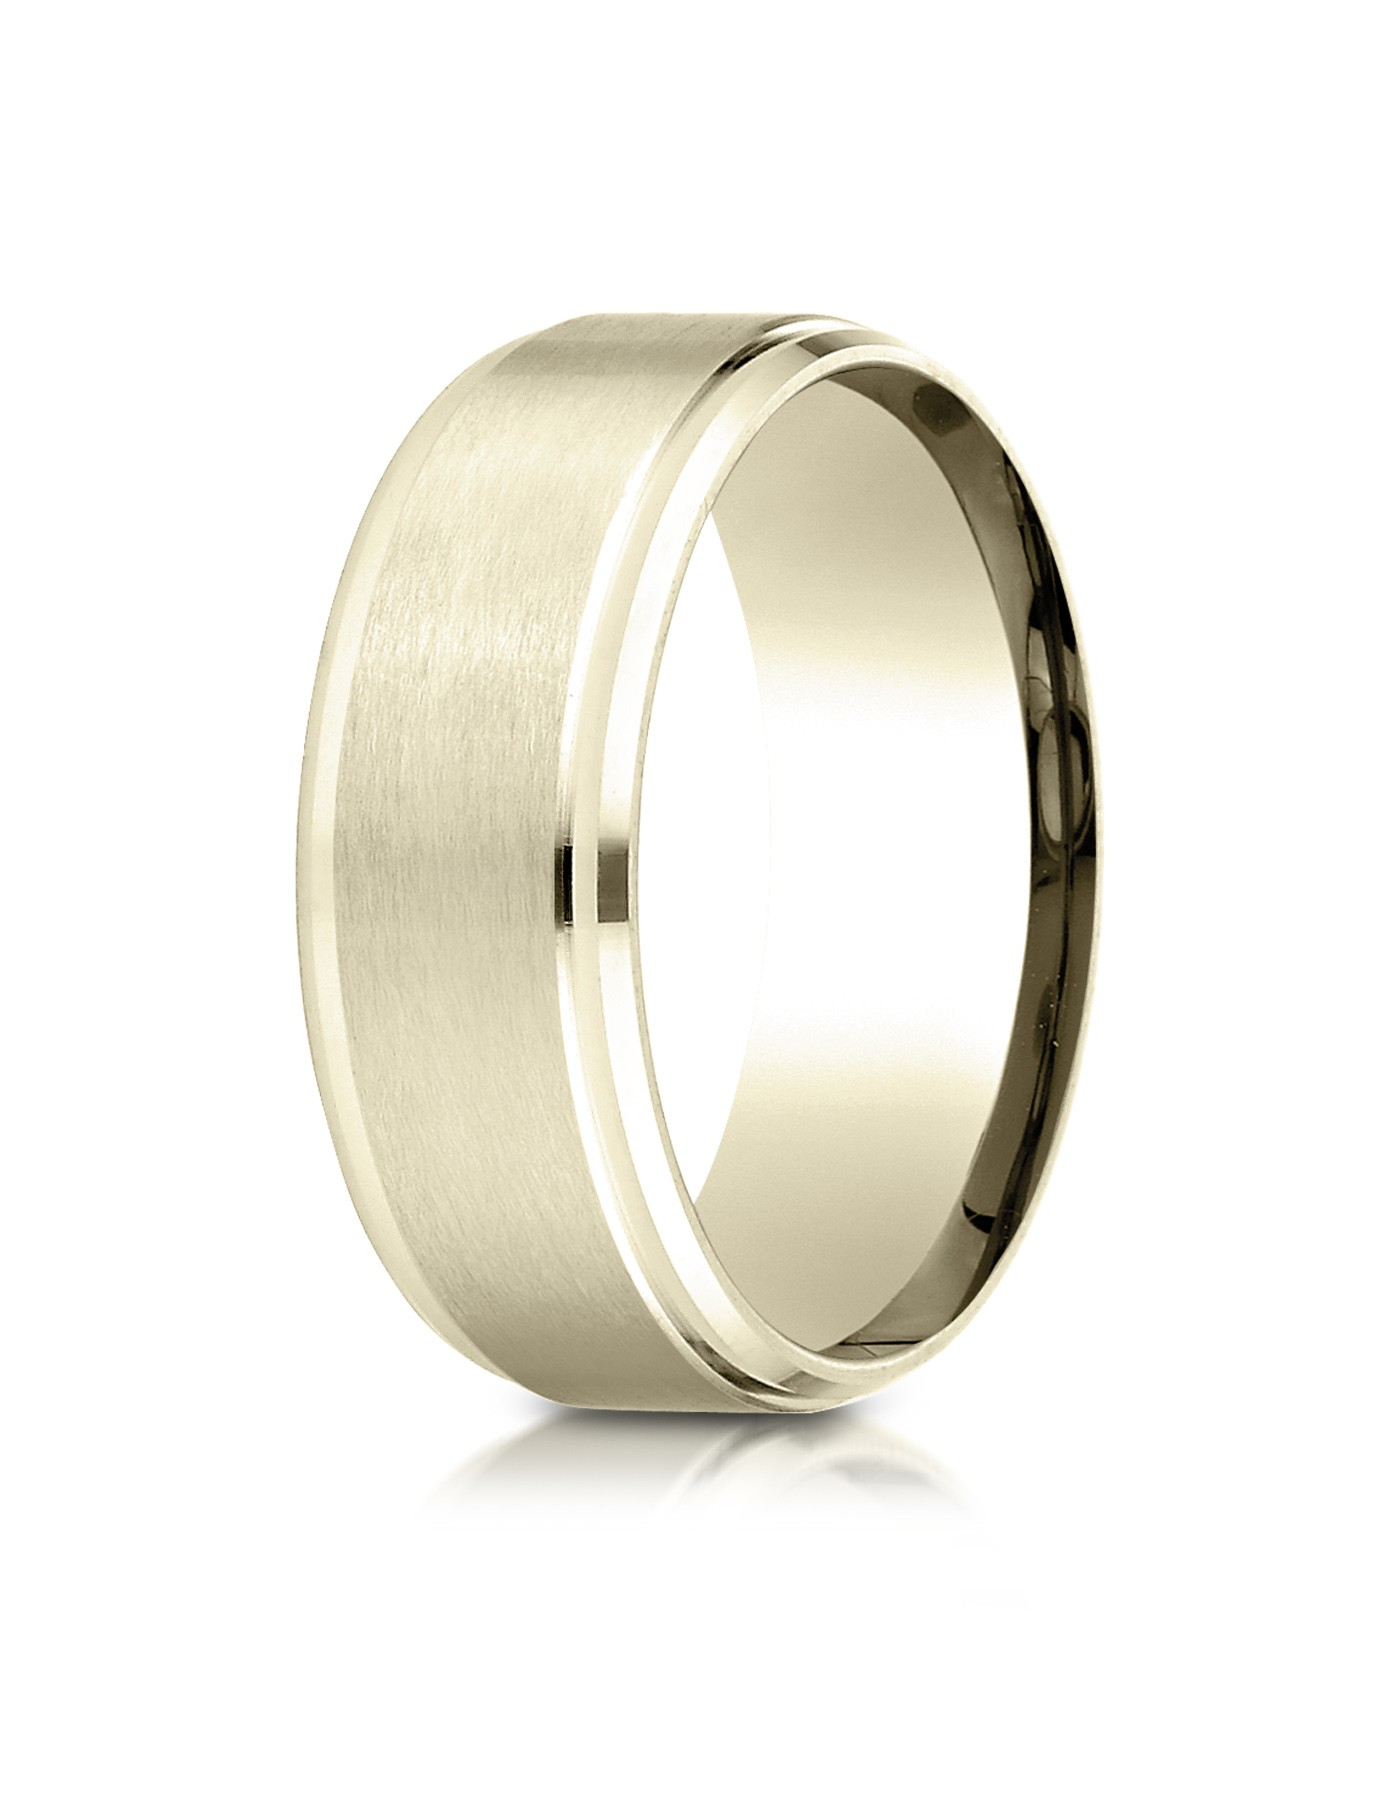 18k Yellow Gold 8mm Comfort-fit Satin-finished Drop Beveled Edge Carved Design Band